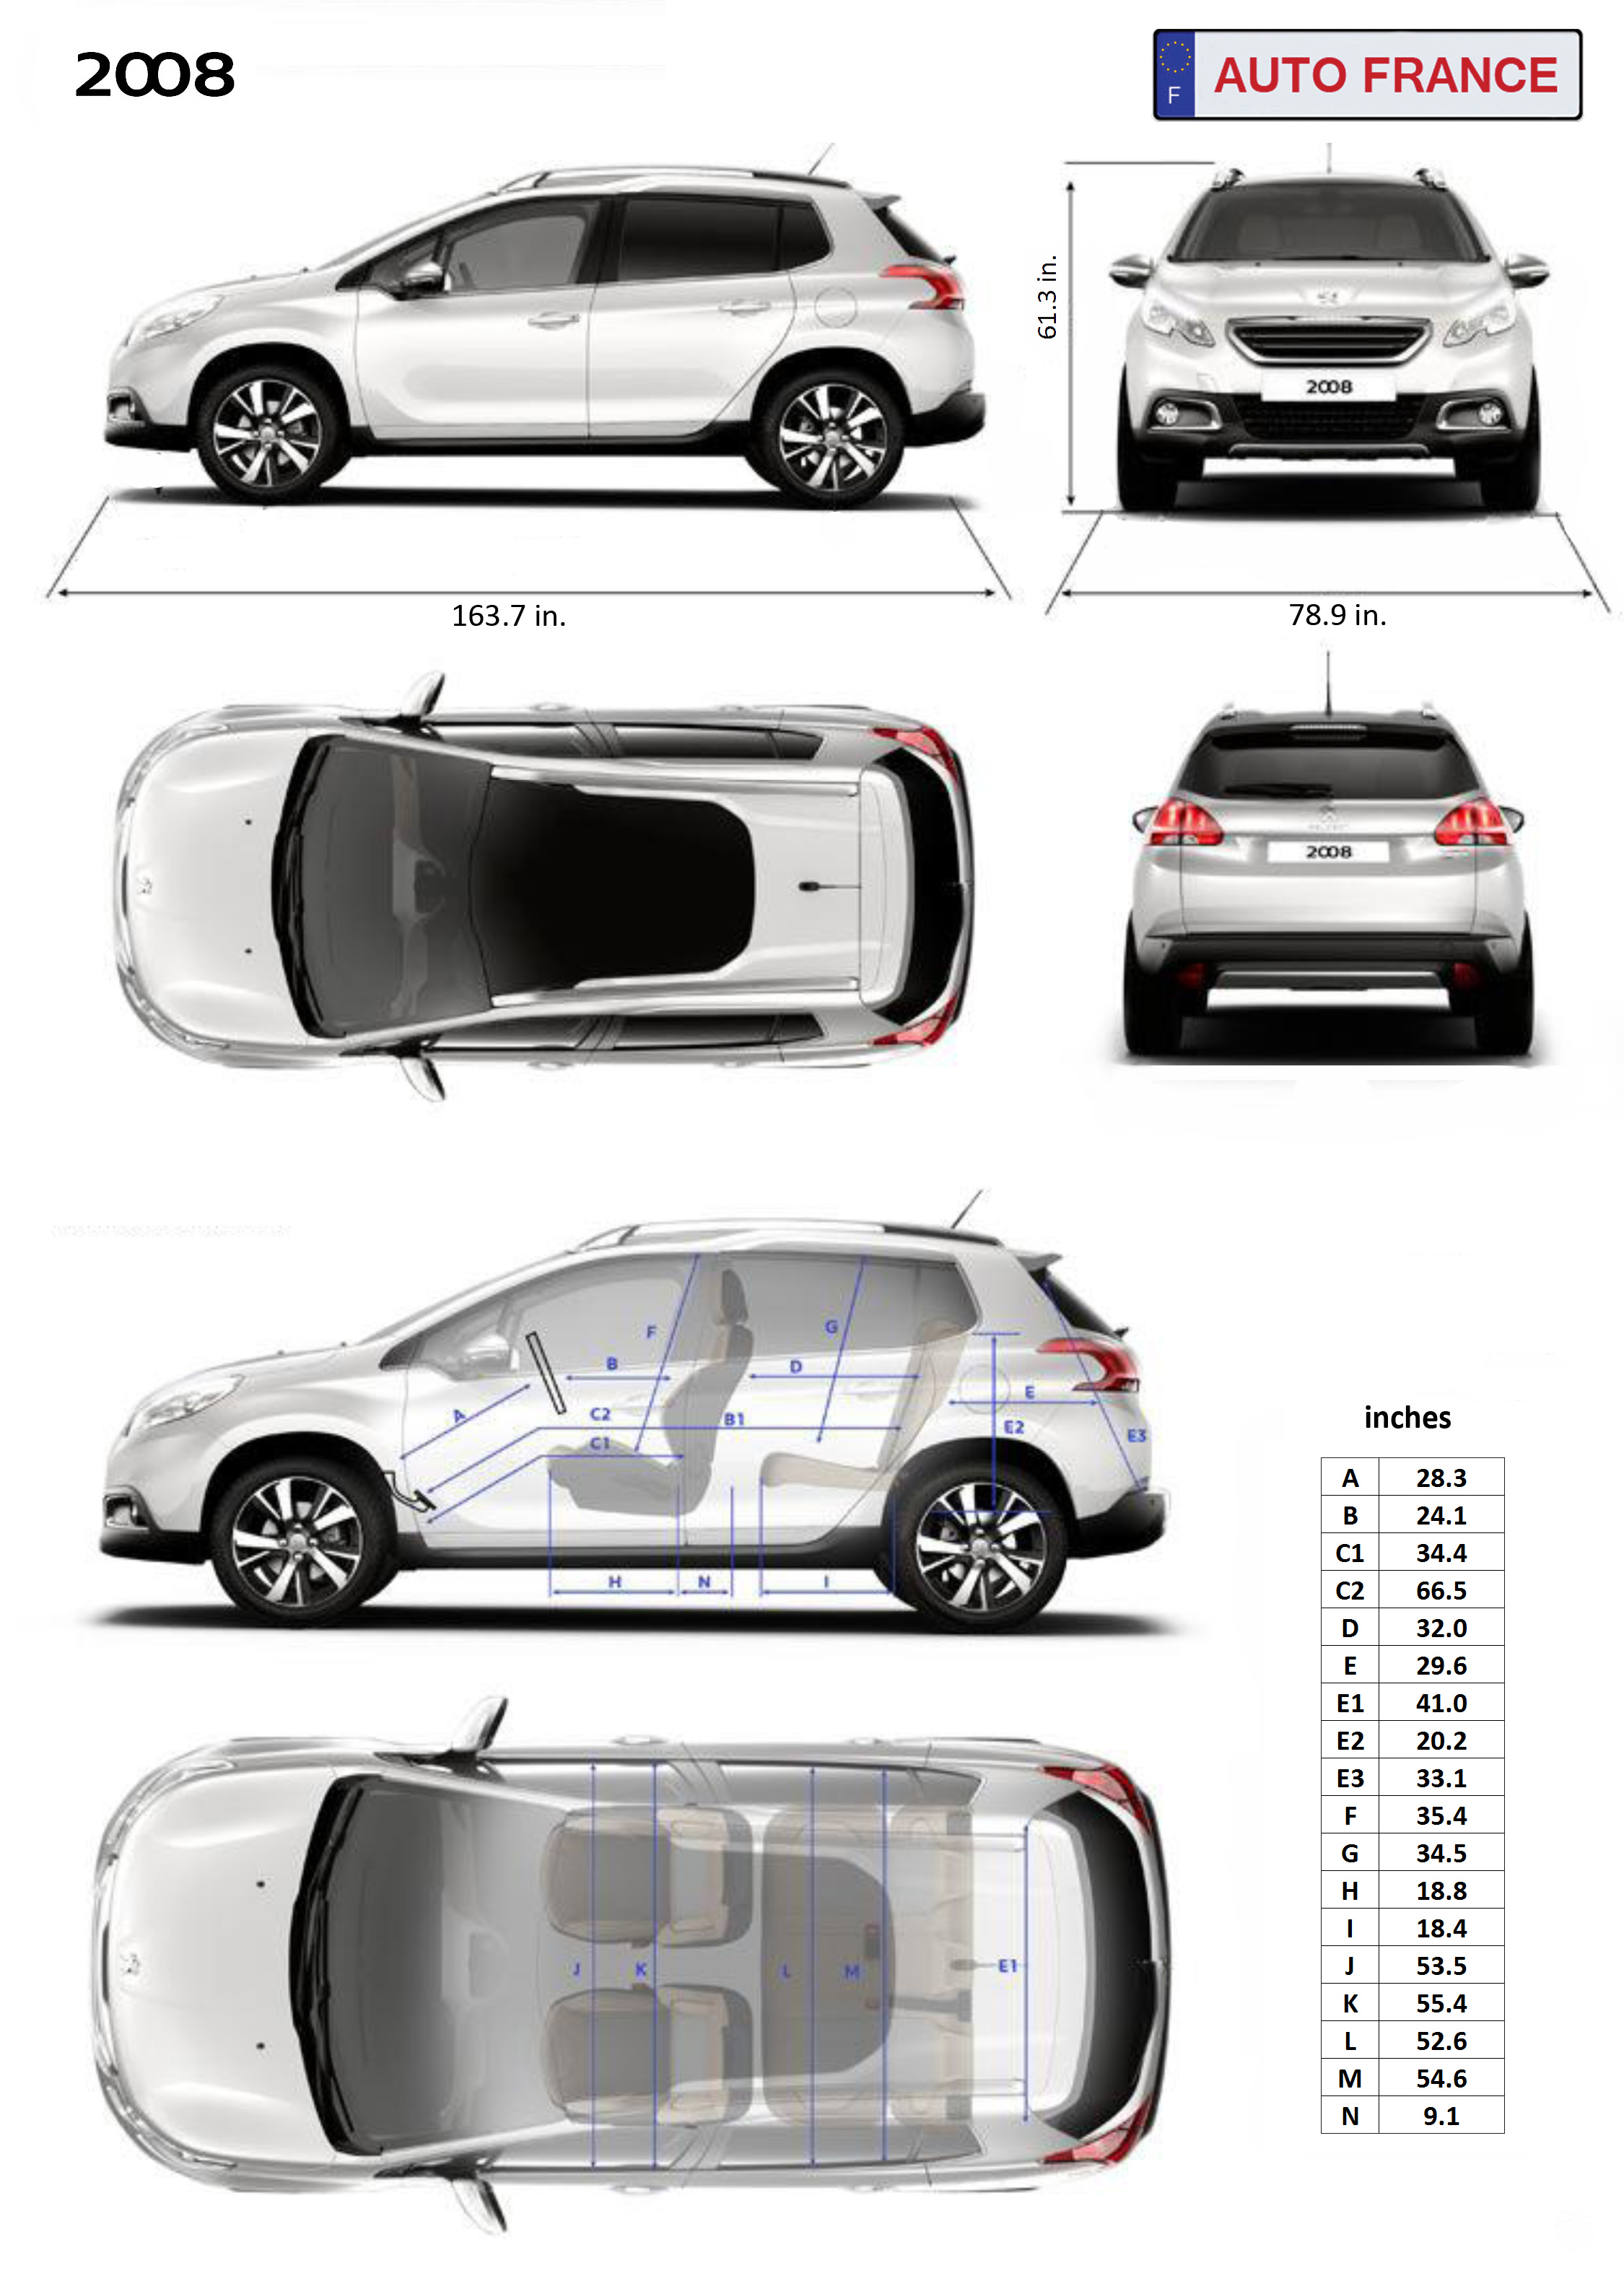 peugeot 2008 information - dimensions - specifications